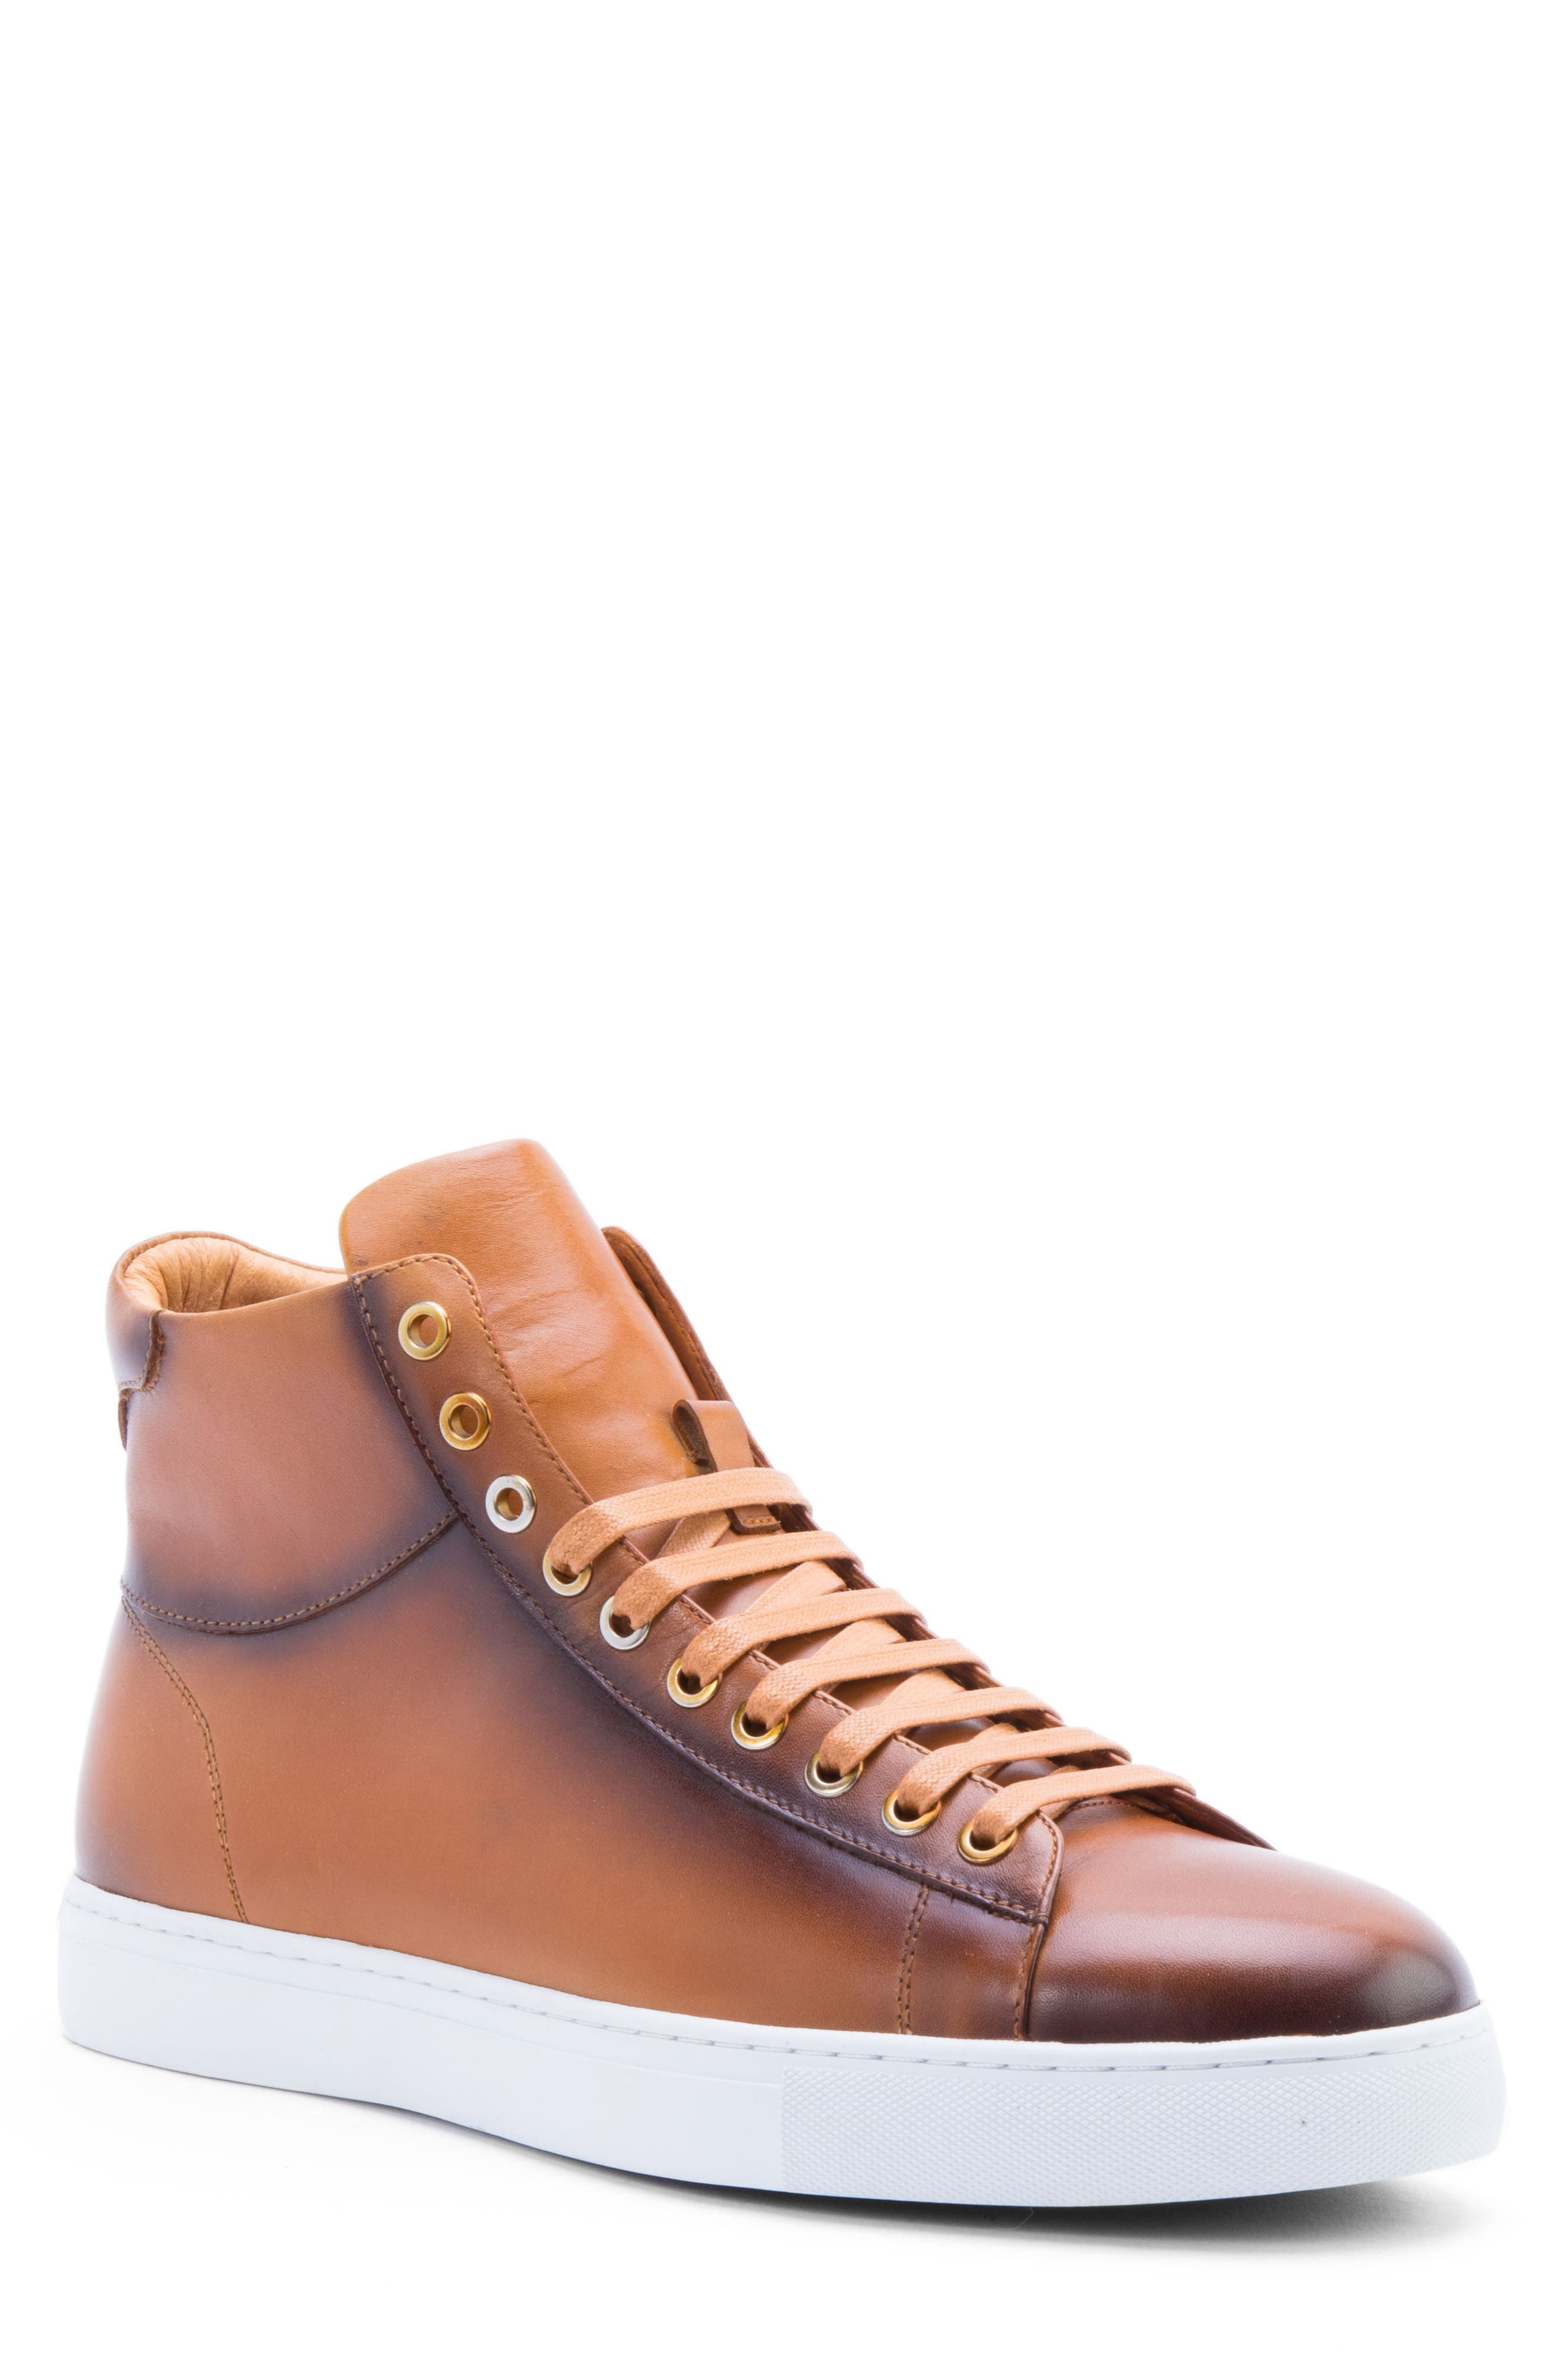 Spinback High Top Sneaker,                         Main,                         color, Cognac Leather